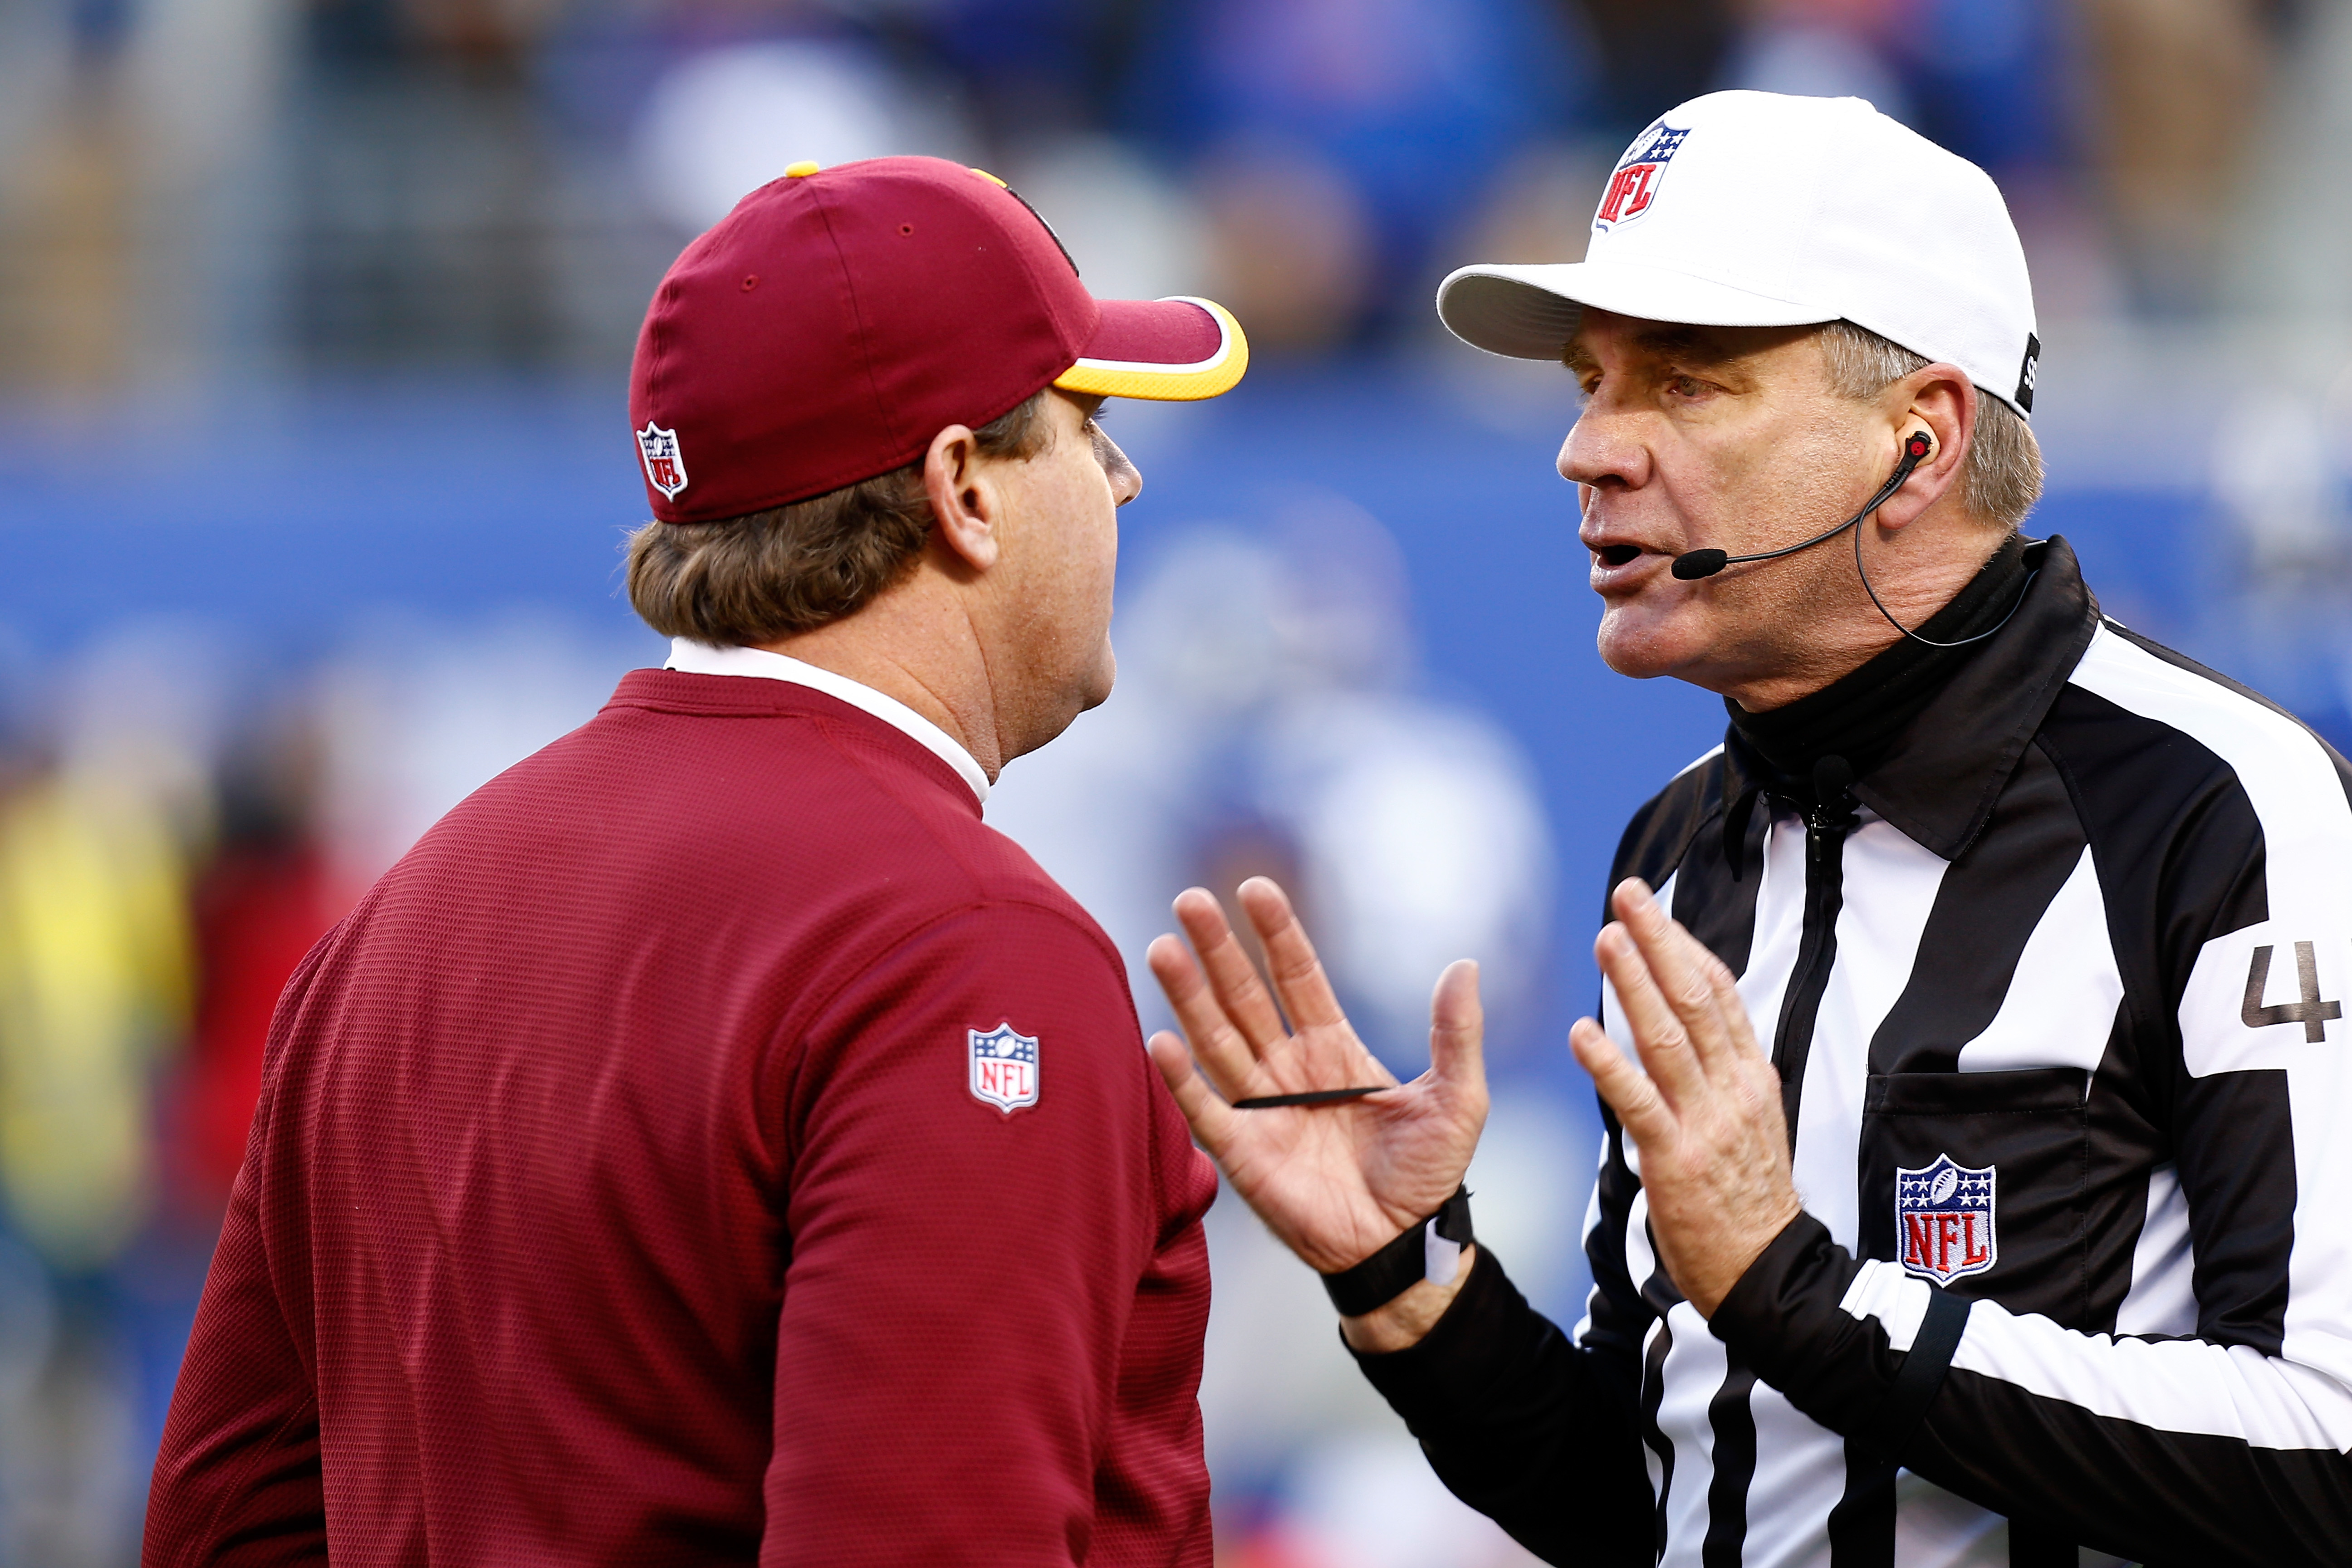 Jeff Triplette and Washington coach Jay Gruden discussing the end-of-the-half fumble by RGIII